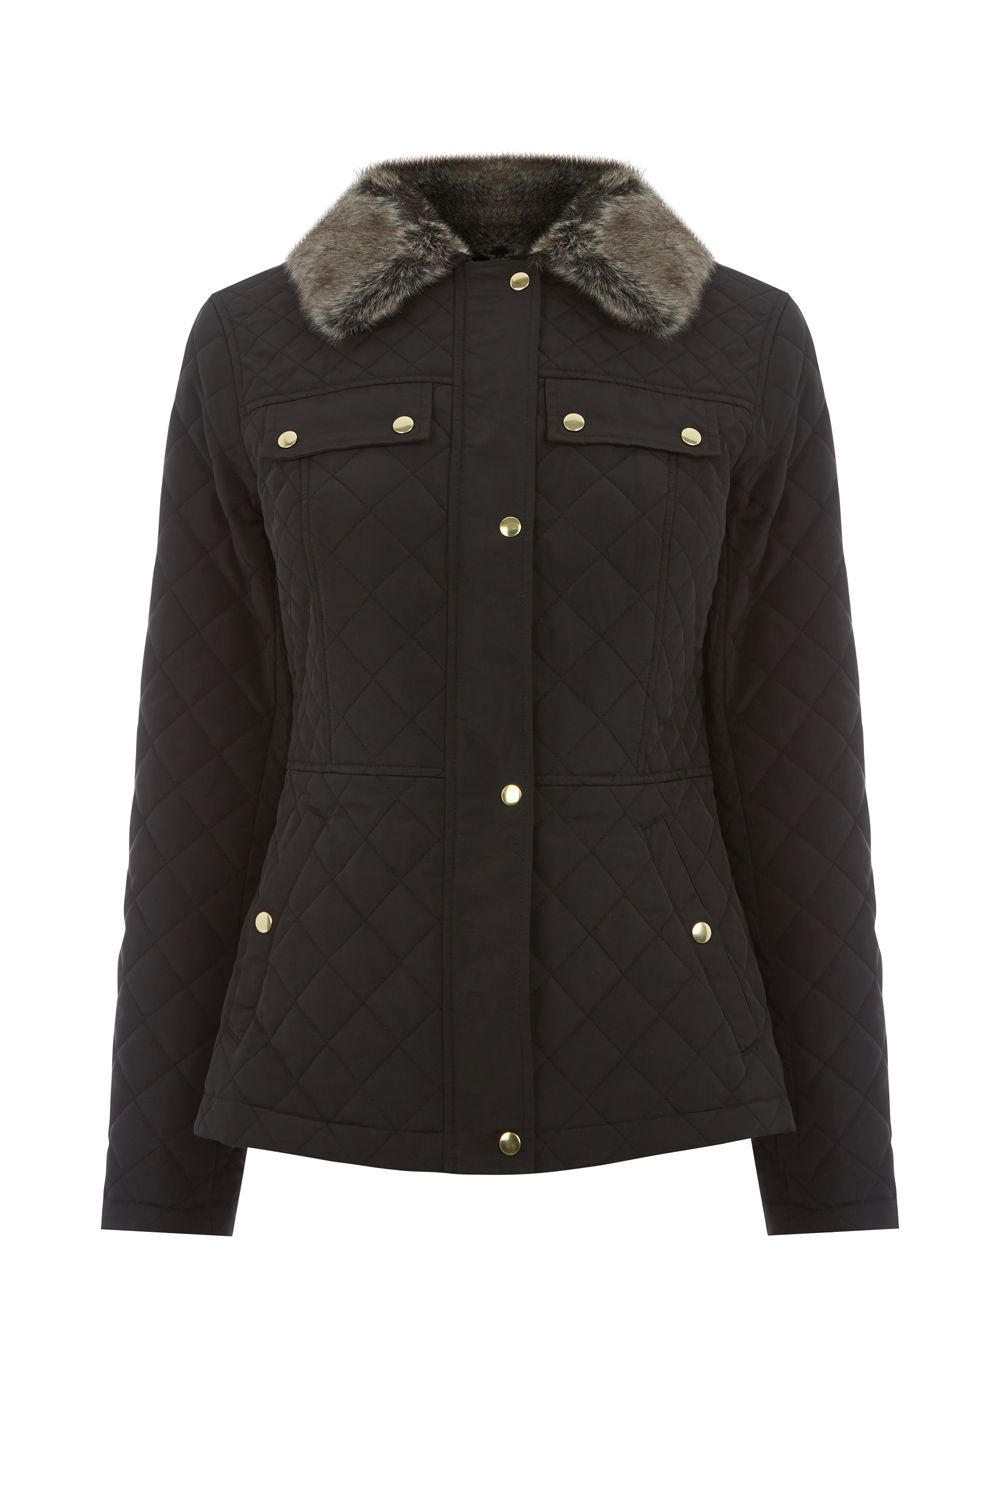 Oasis Quilted Jacket, Black